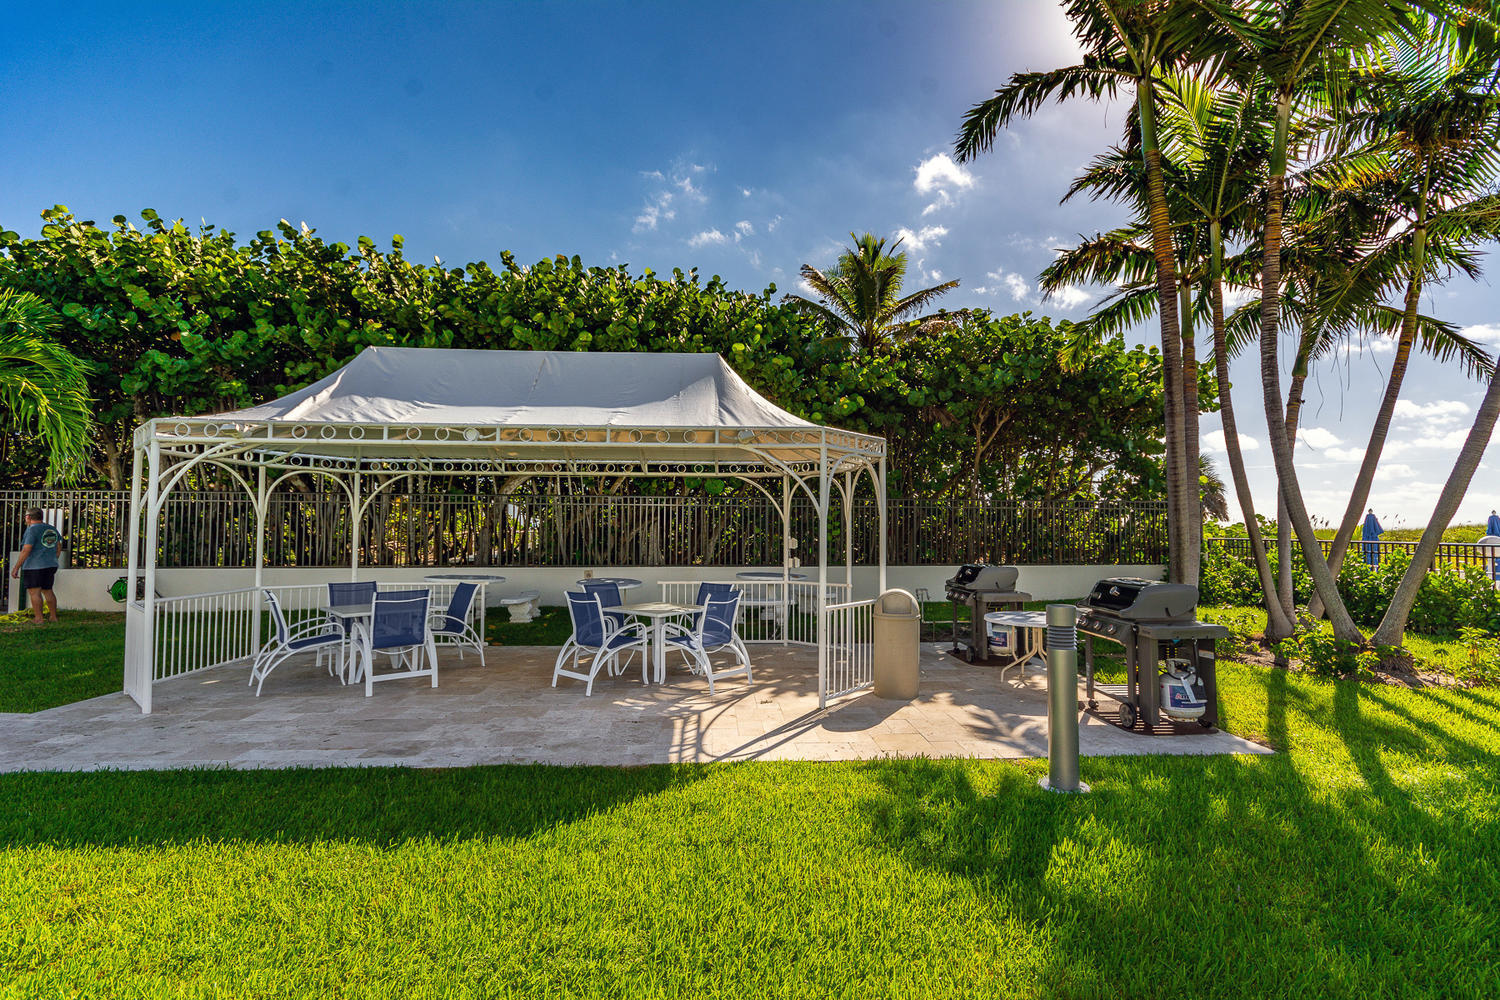 PALM BEACH SHORES PALM BEACH SHORES REAL ESTATE